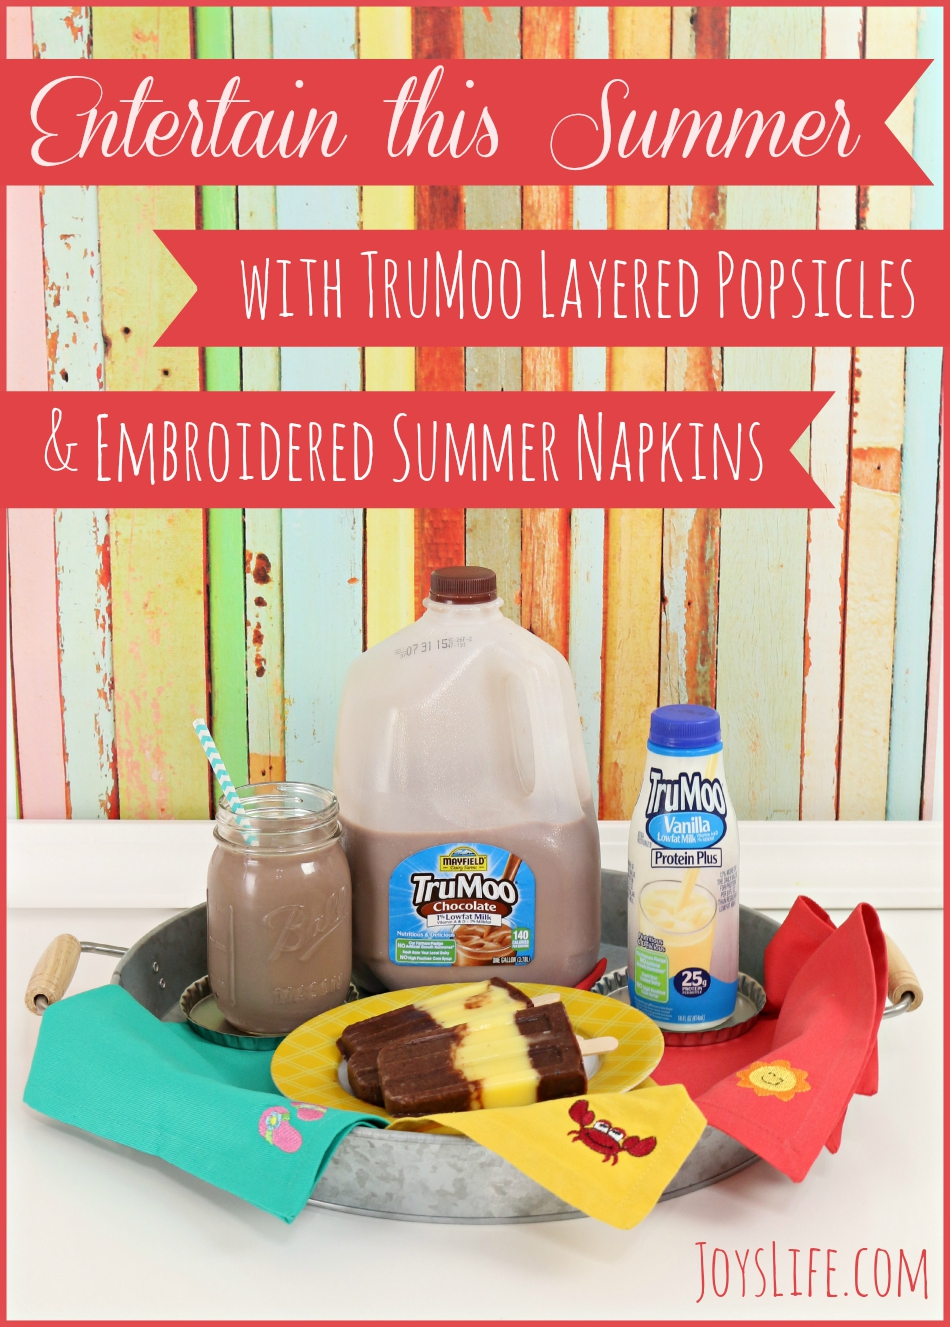 Entertain the Summer with TruMoo Layered Popsicles & Embroidered Summer Napkins #TruMoo #ad